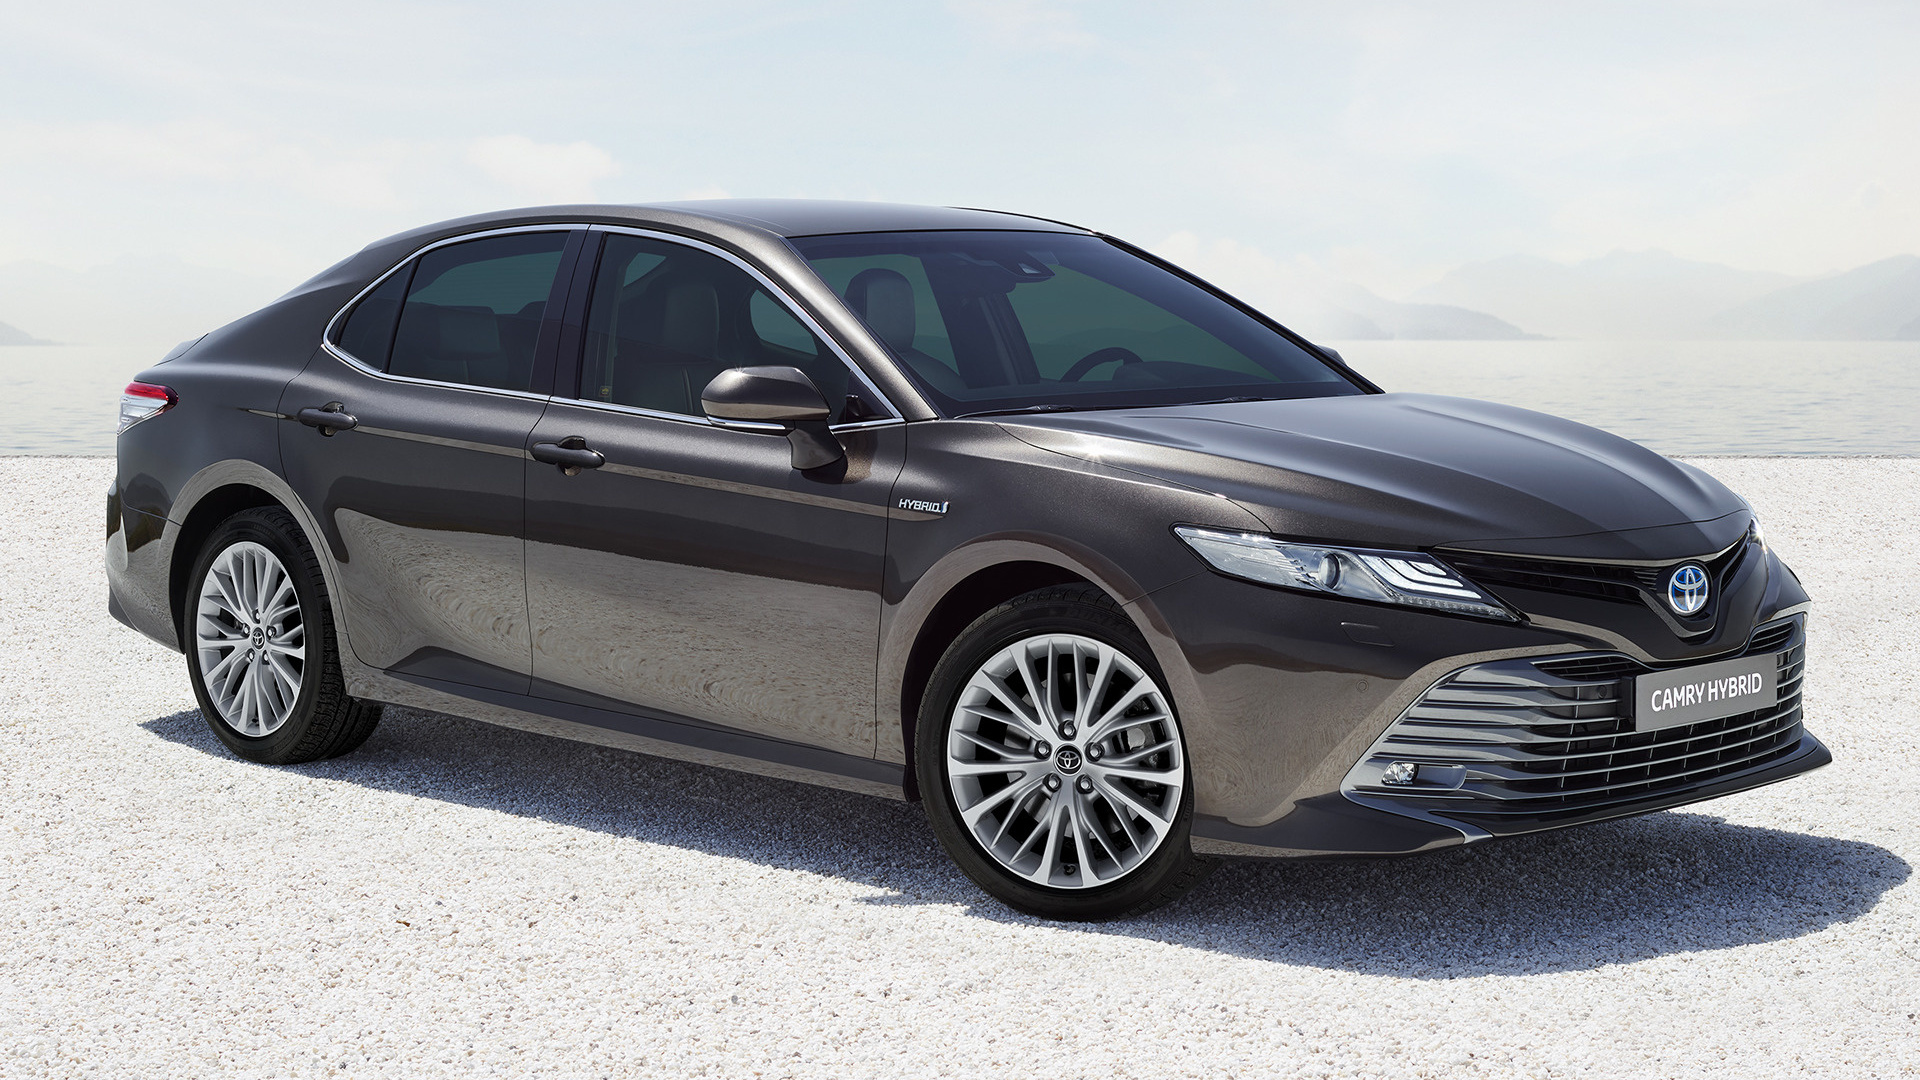 2019 Toyota Camry Hybrid (EU) - Wallpapers and HD Images ...